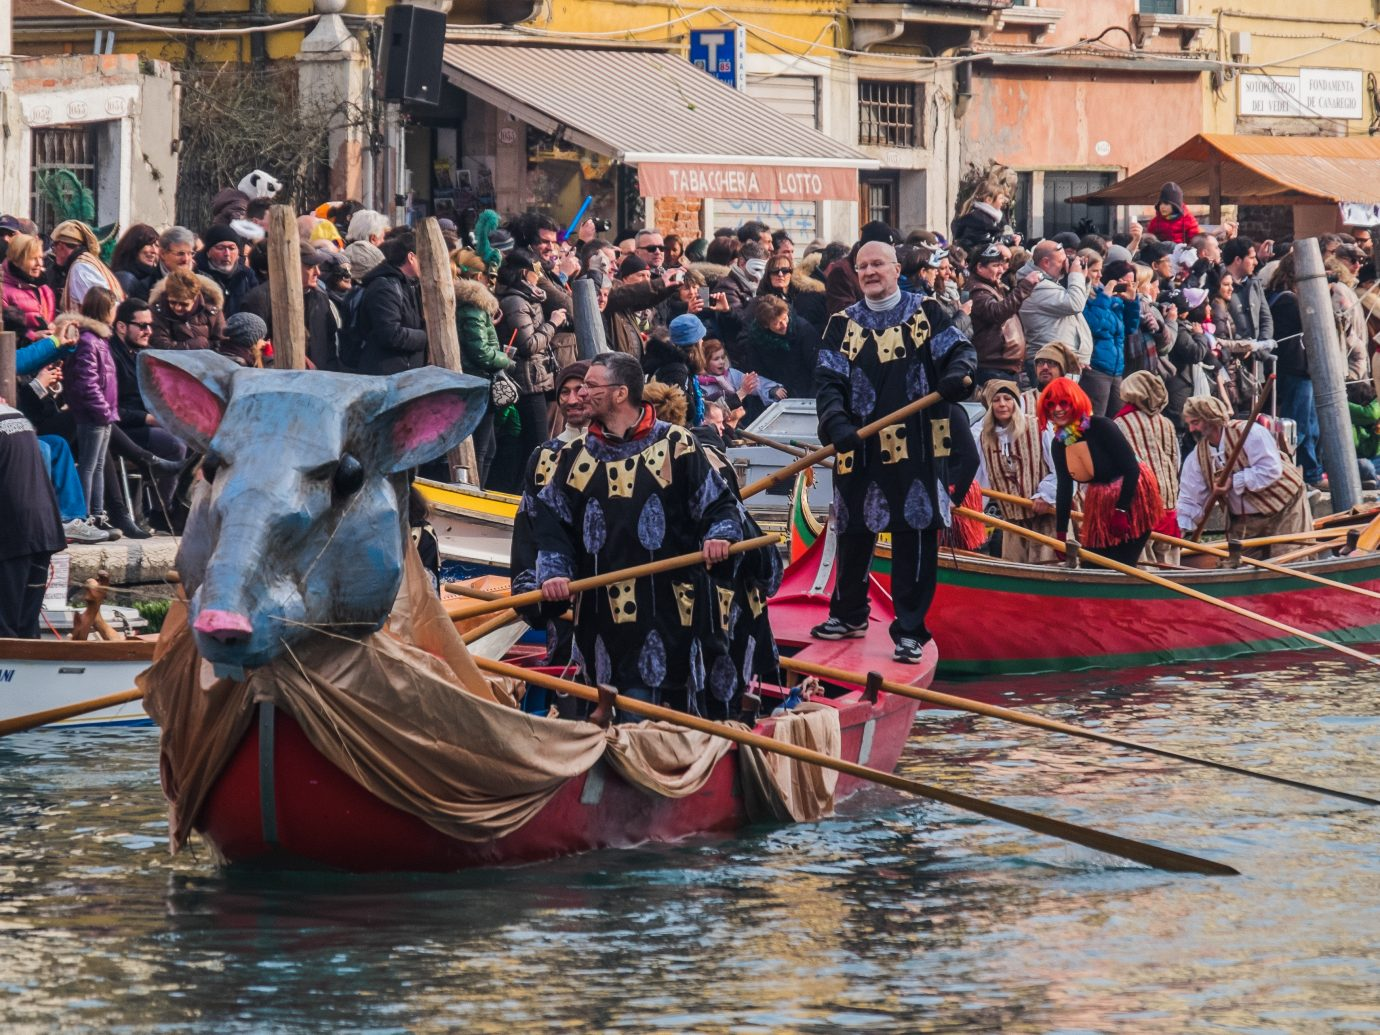 People dress up and row decorative boats in Venice